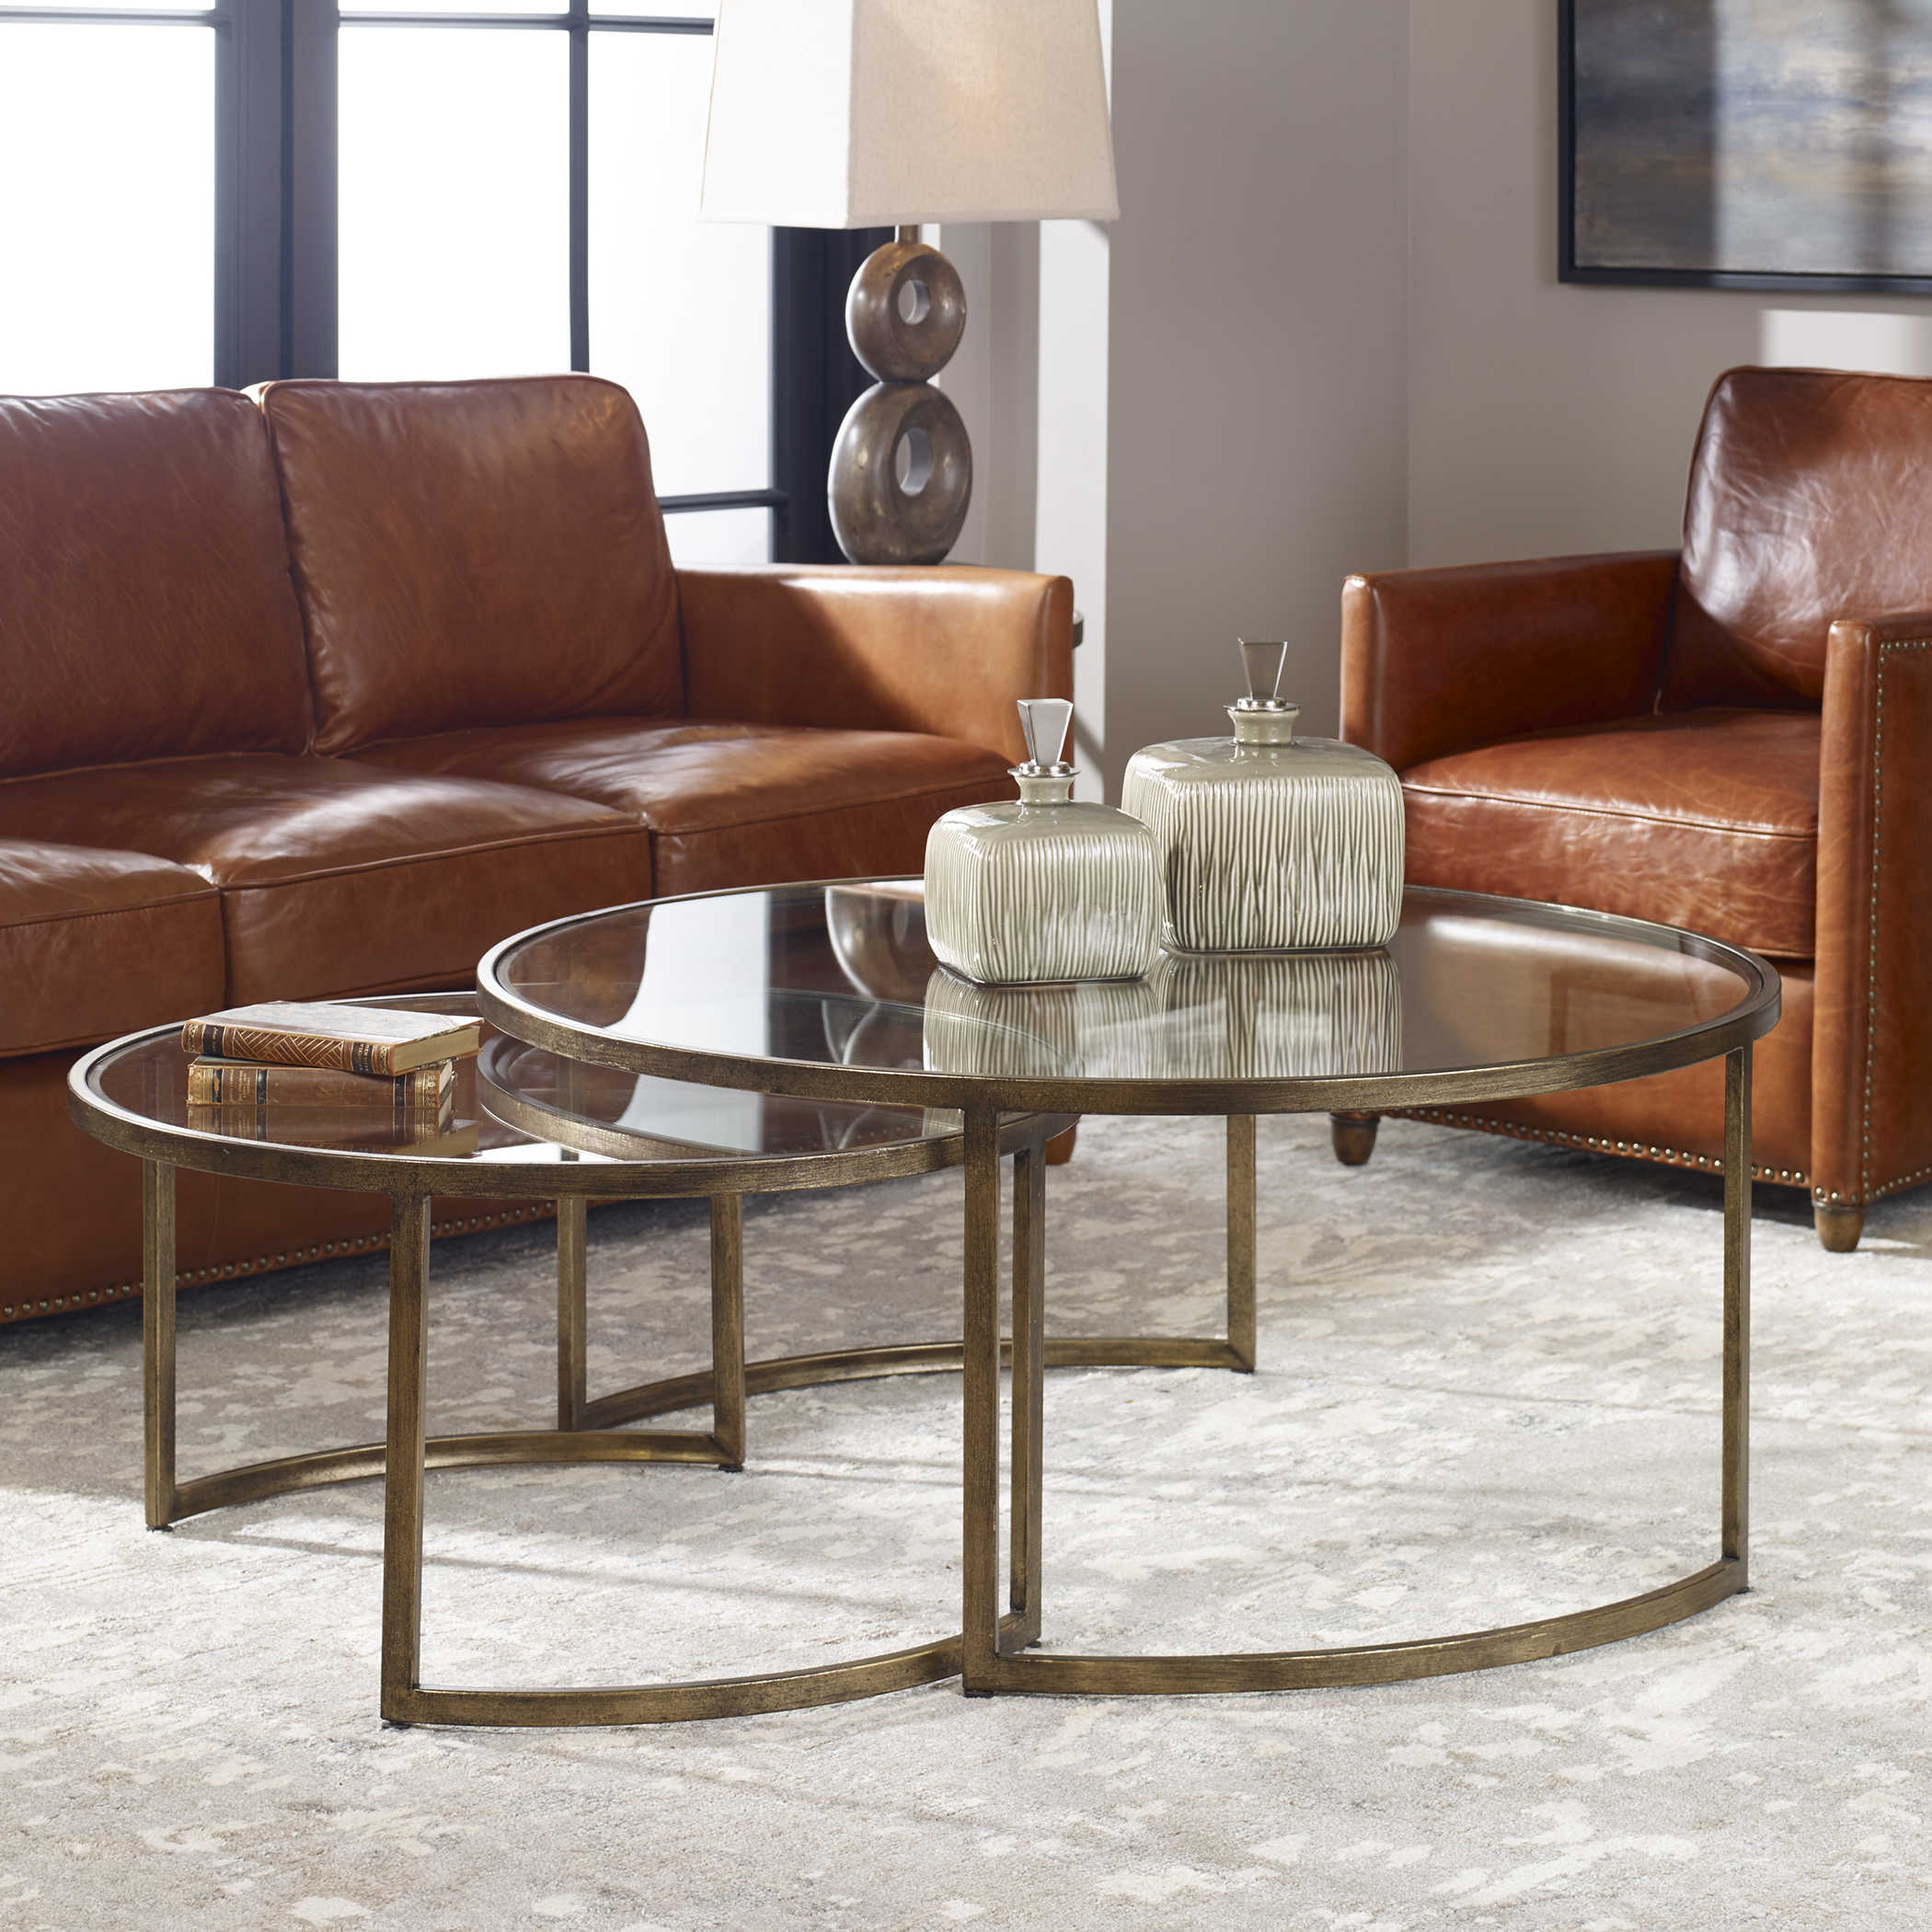 42 Coffee Table Antiqued Gold Leaf Finish Set of 2 Uttermost 24747 Rhea